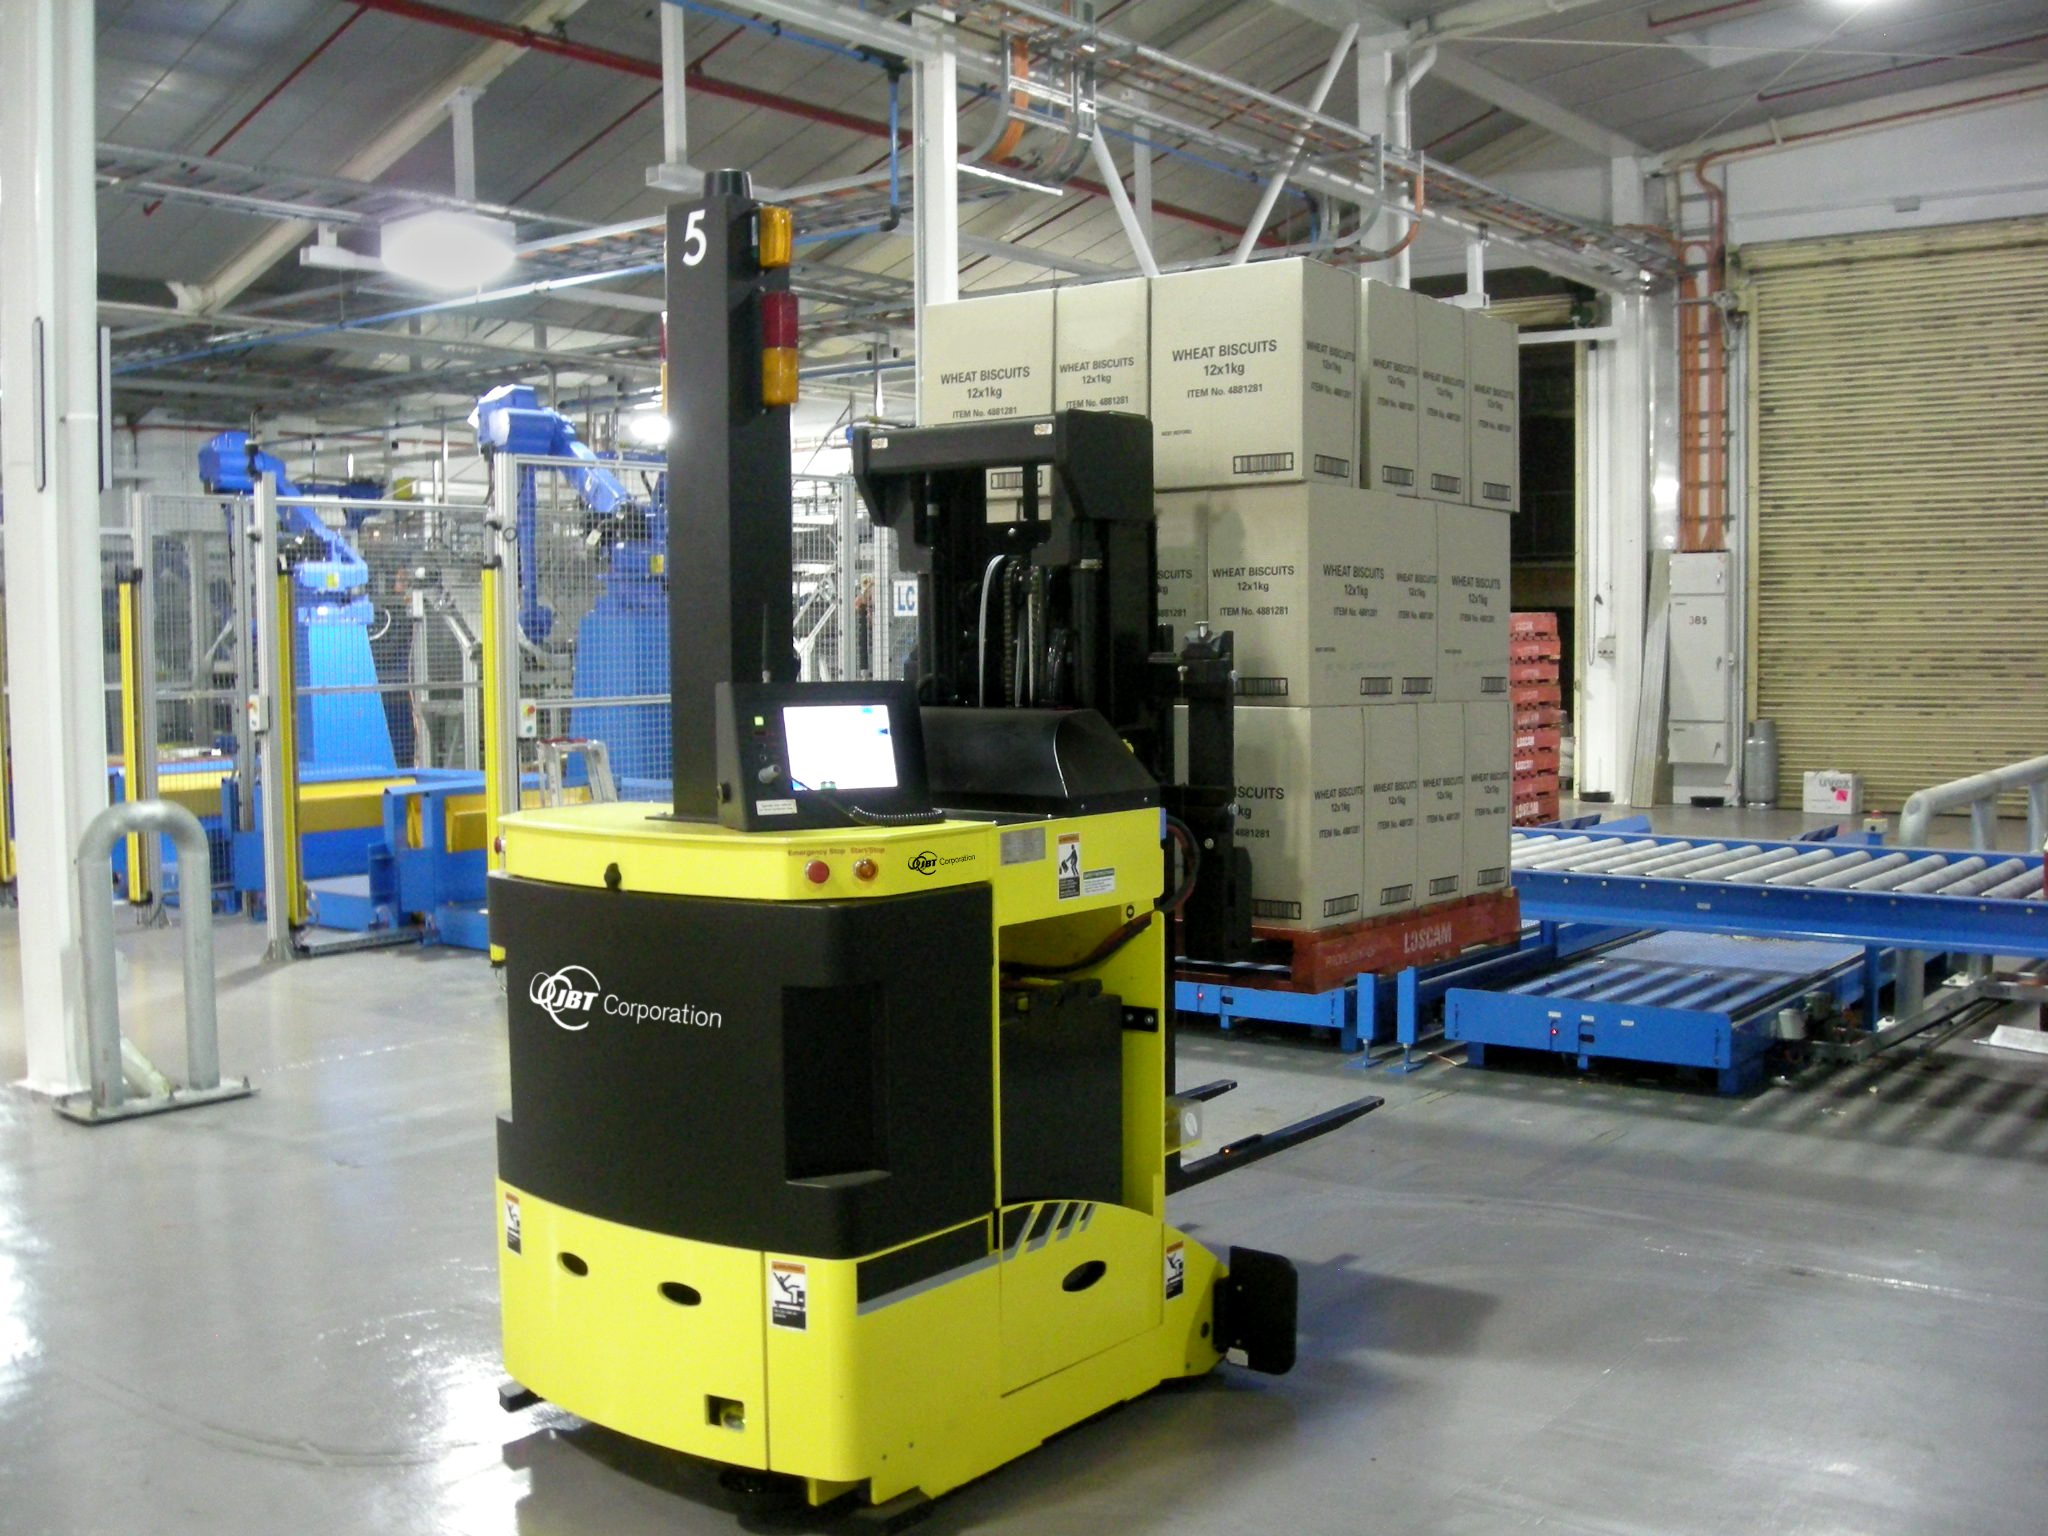 image of robot driverless forklift